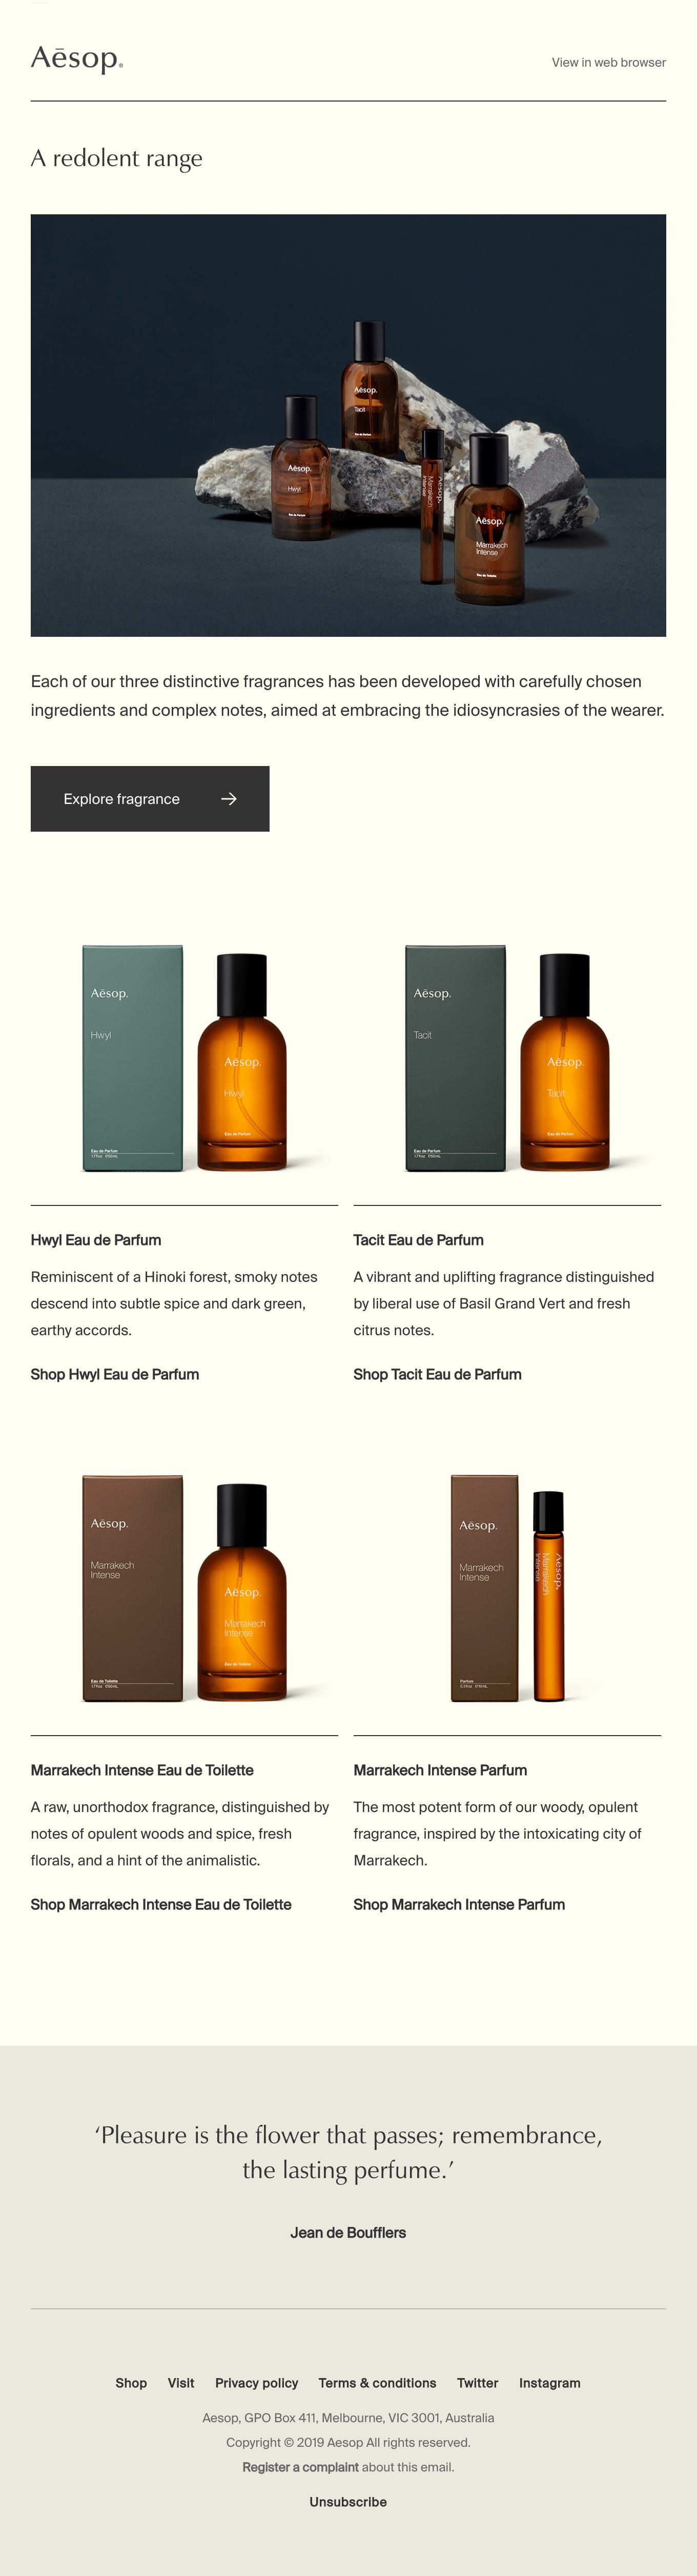 Fragrances for thought Email Screenshot